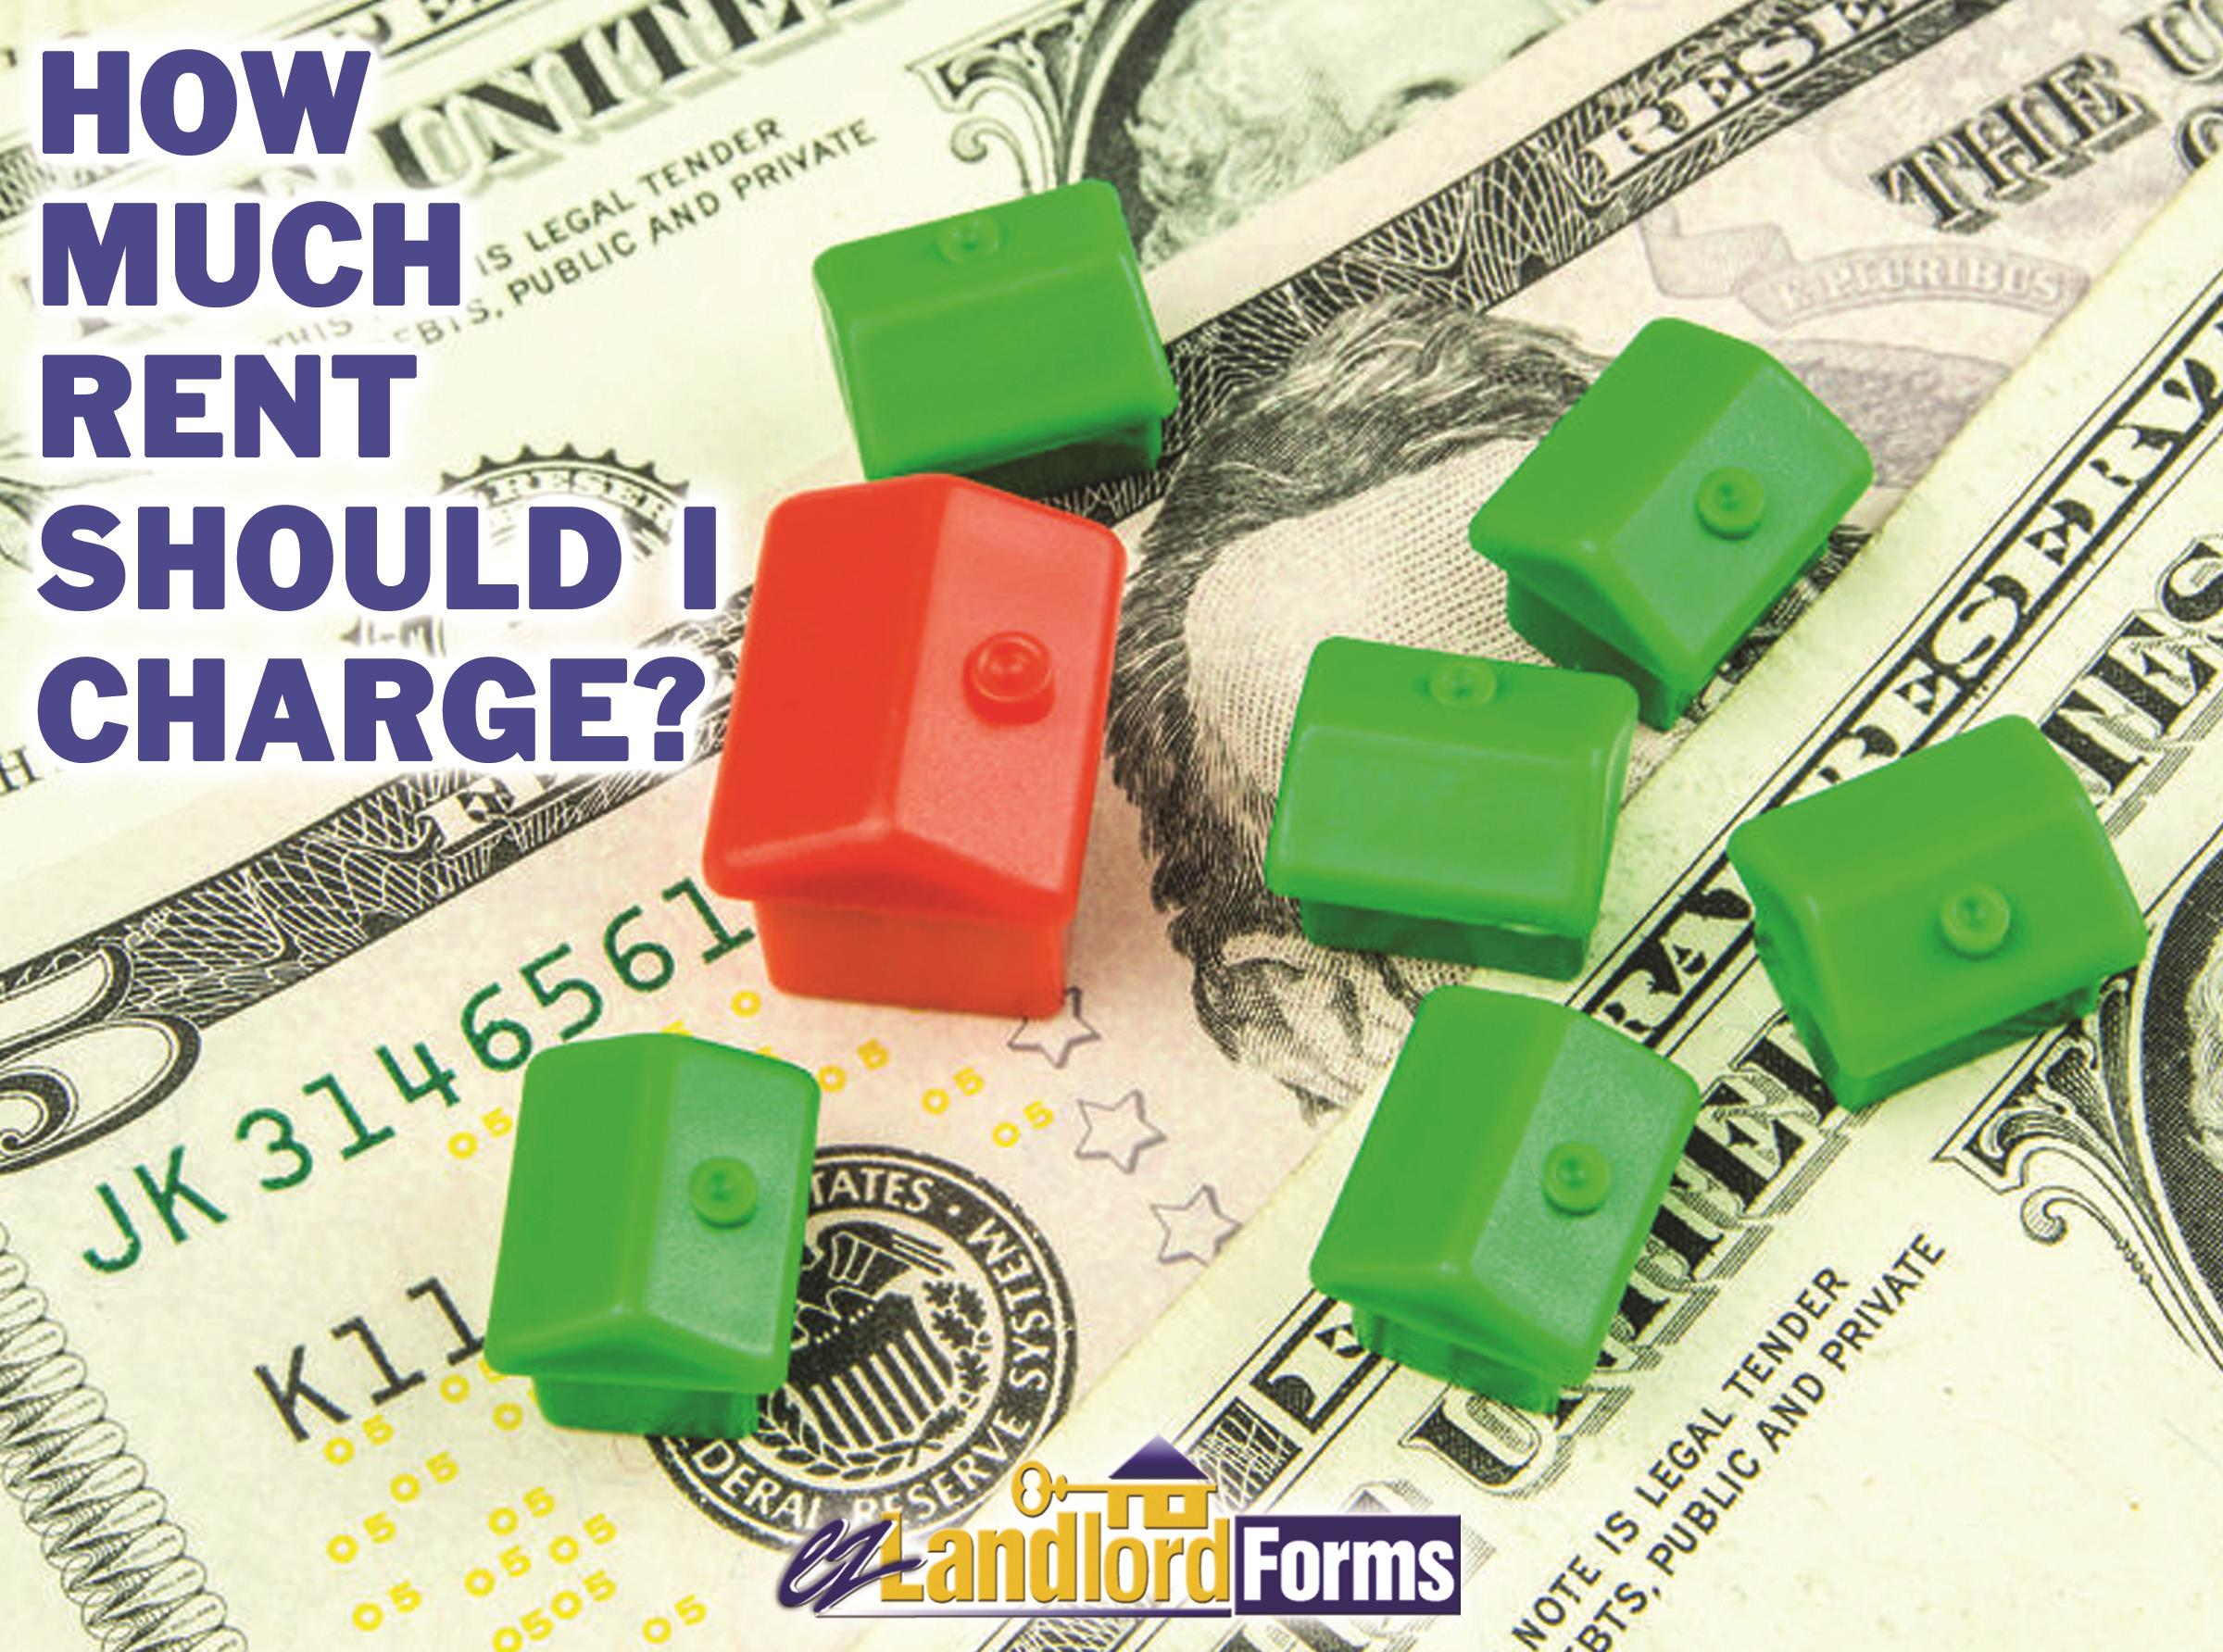 How_much_Rent_Should_I_Charge_3-15-17